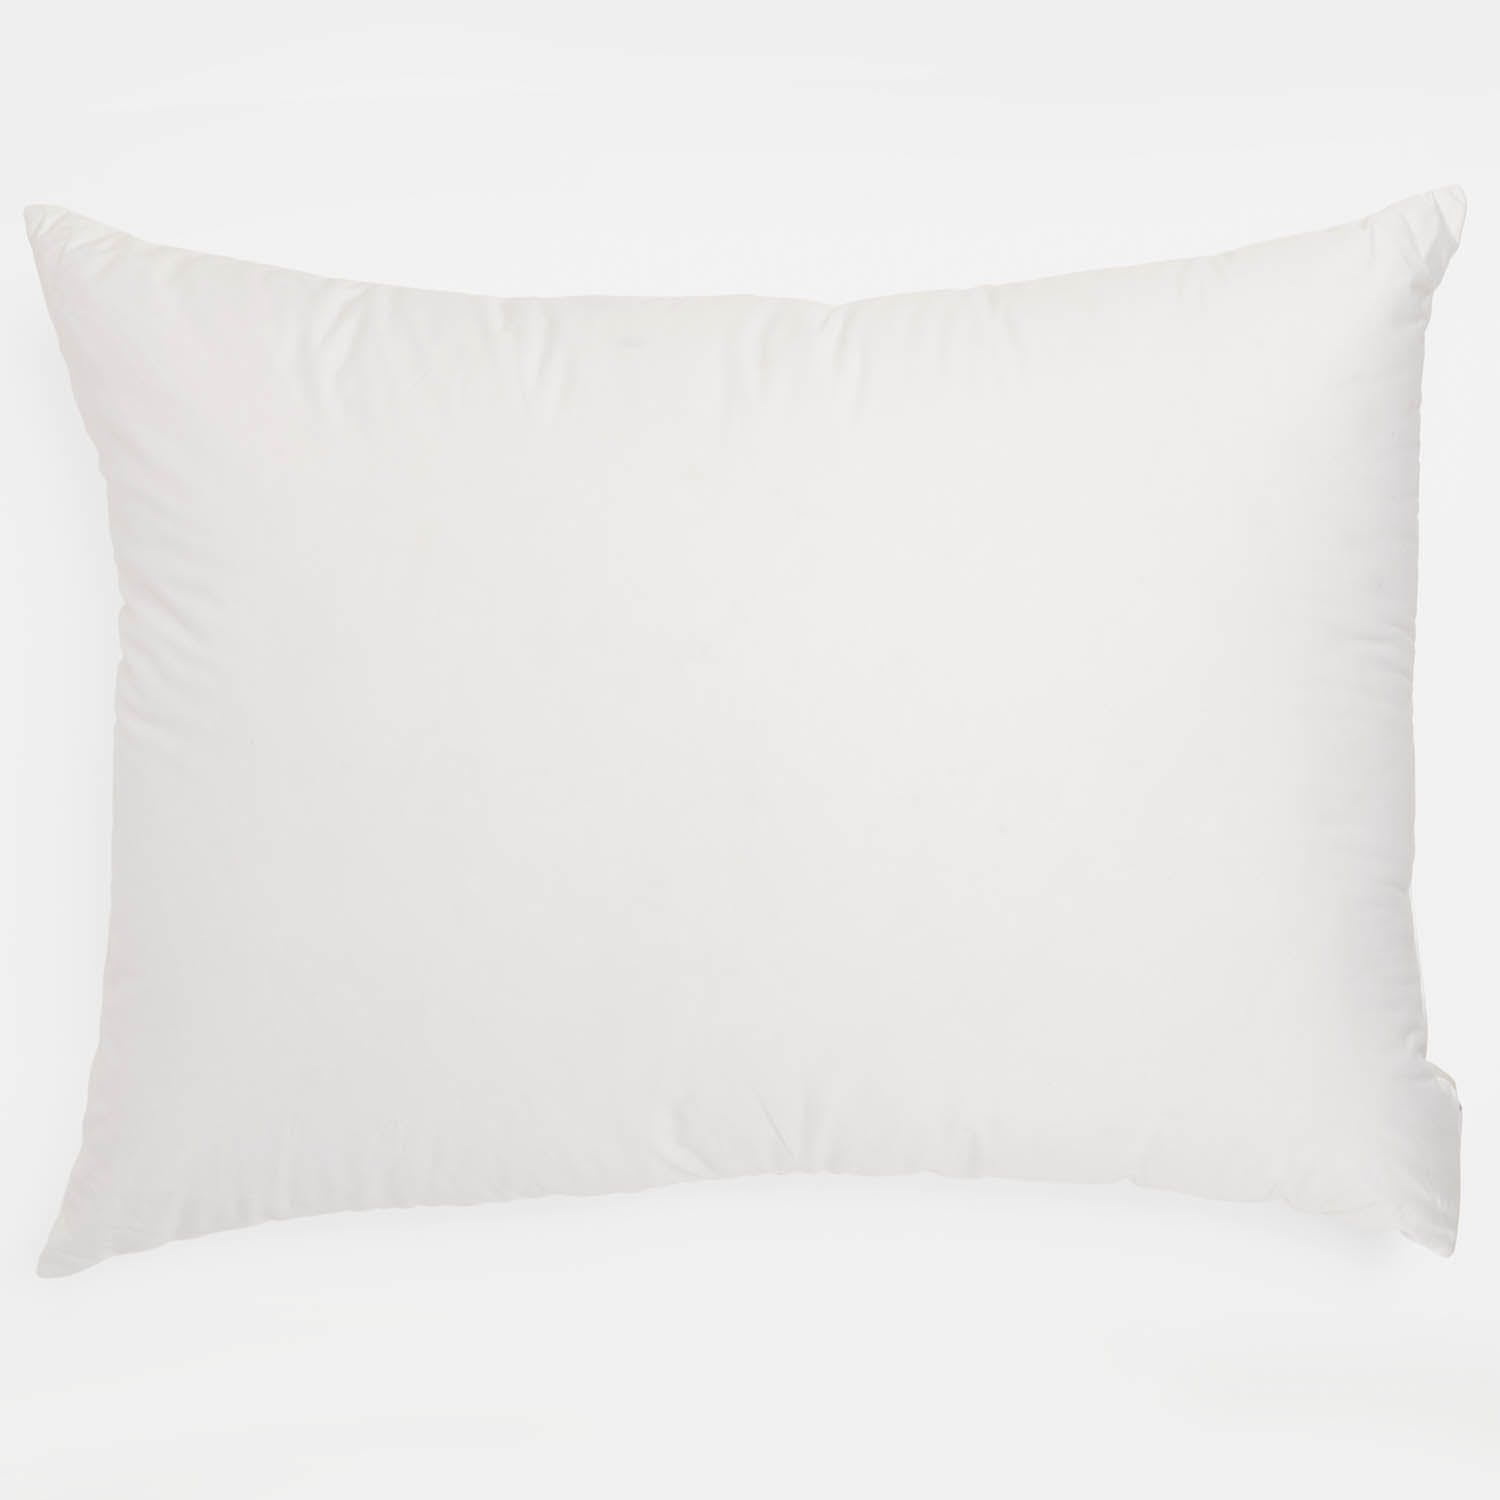 Product Image - Bliss Super-Soft King Pillow